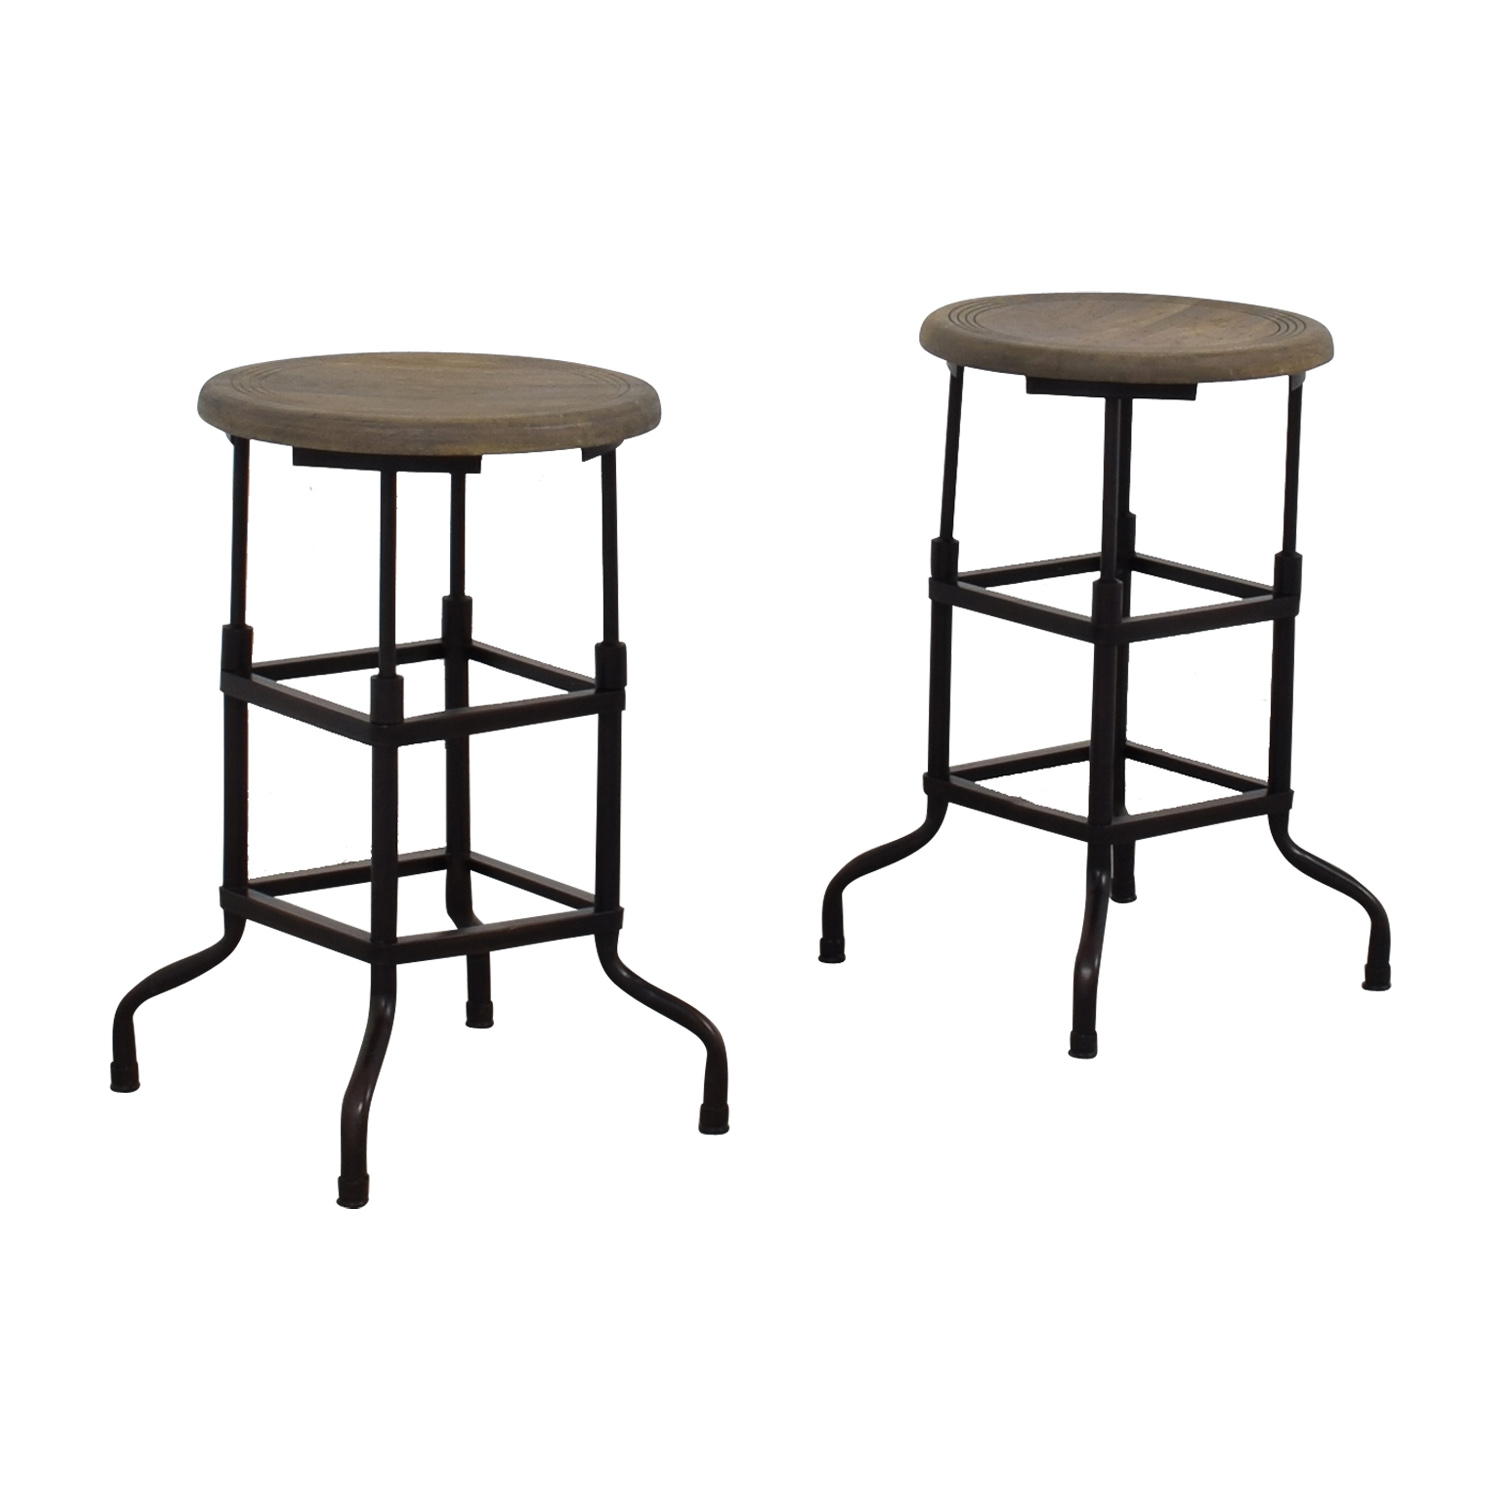 Admirable 69 Off Restoration Hardware Restoration Hardware 1920S American Factory Stools Chairs Gamerscity Chair Design For Home Gamerscityorg